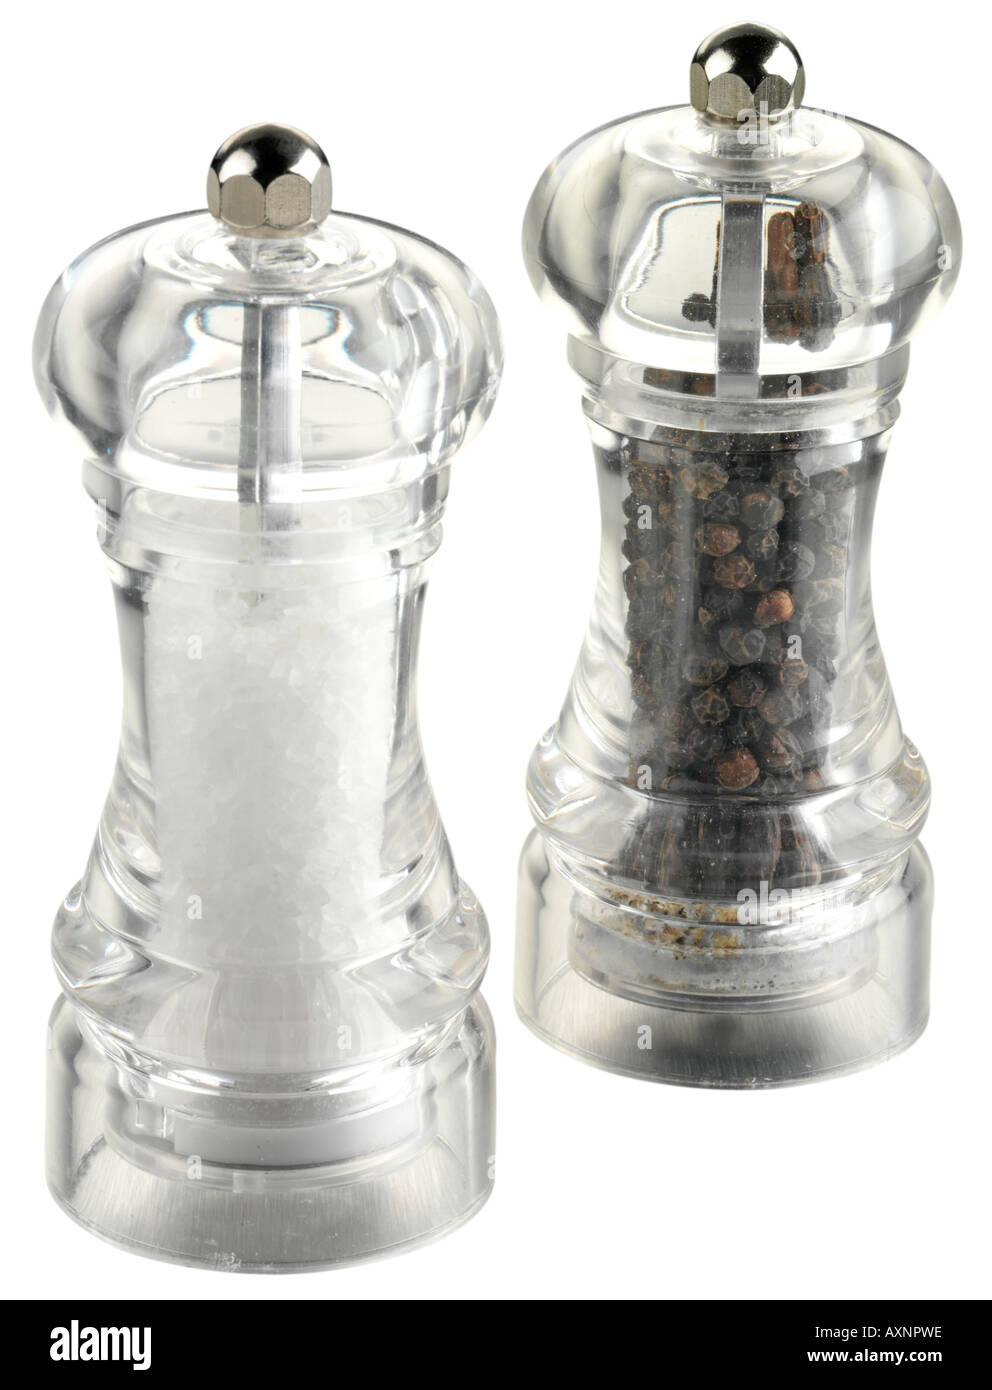 SALT AND PEPPER MILL / GRINDER CUT OUT - Stock Image